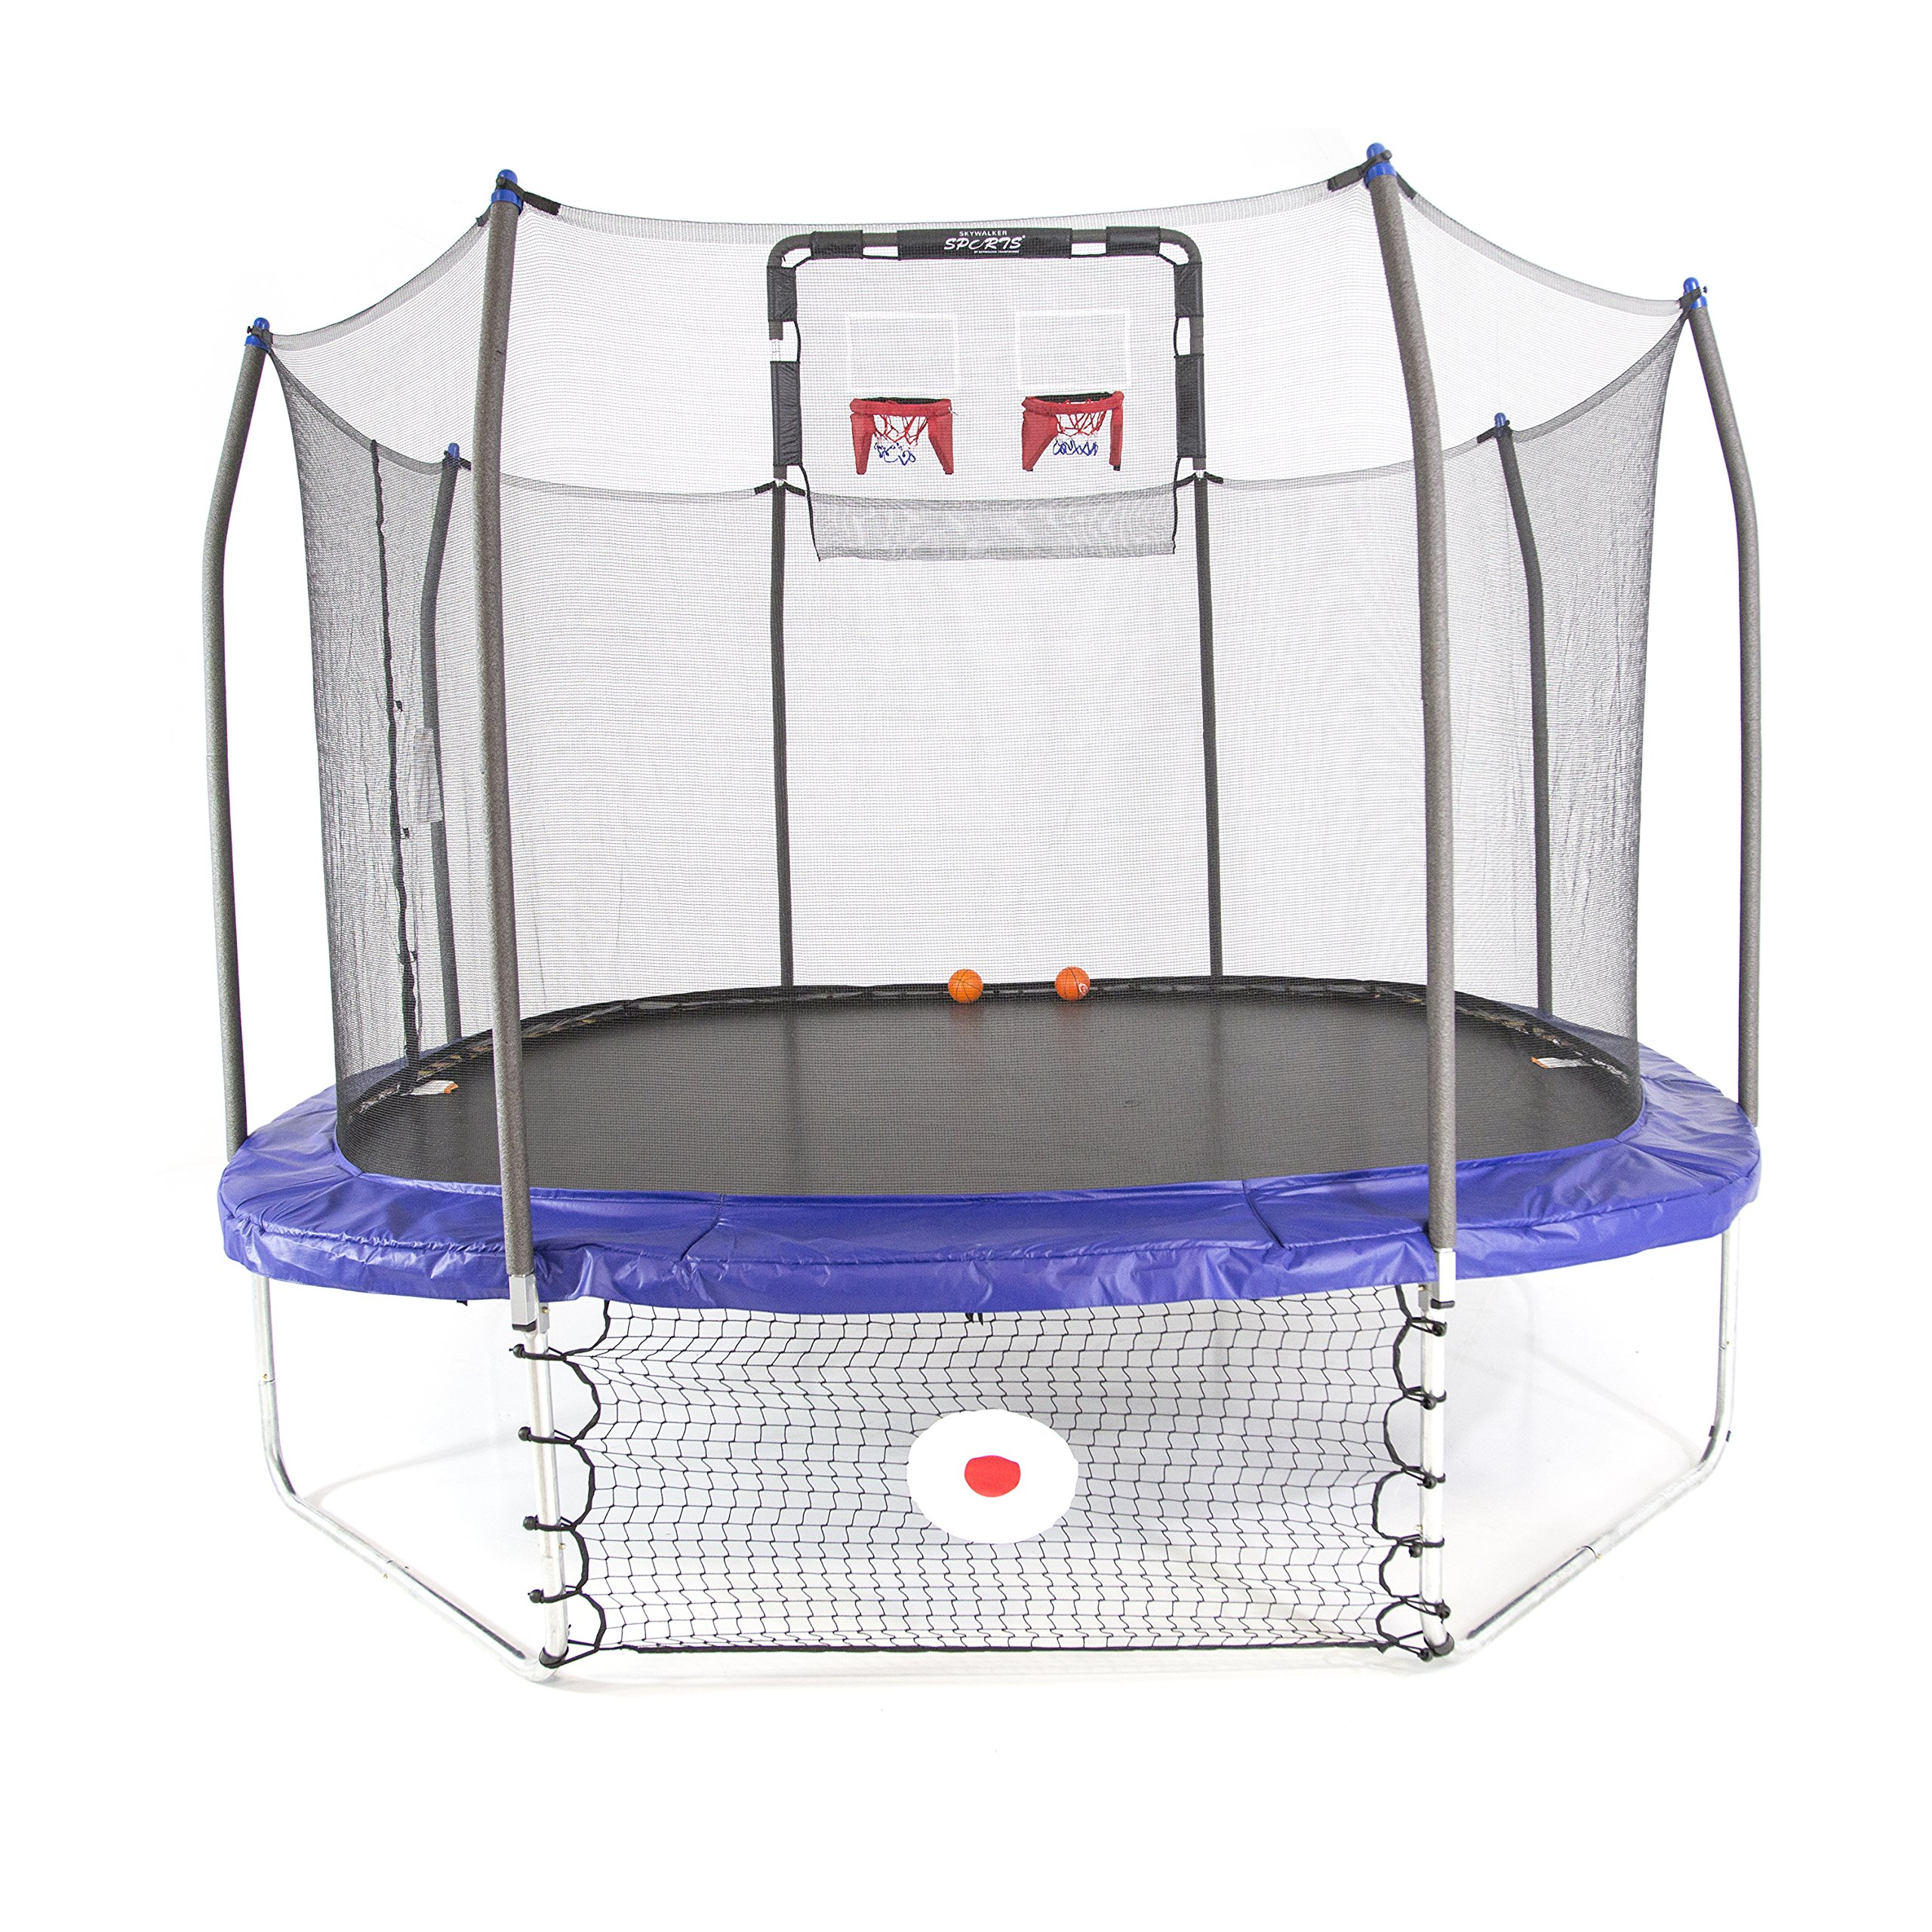 Skywalker Trampolines 12-Foot Square Trampoline with Enclosure – Soccer and Basketball Trampoline